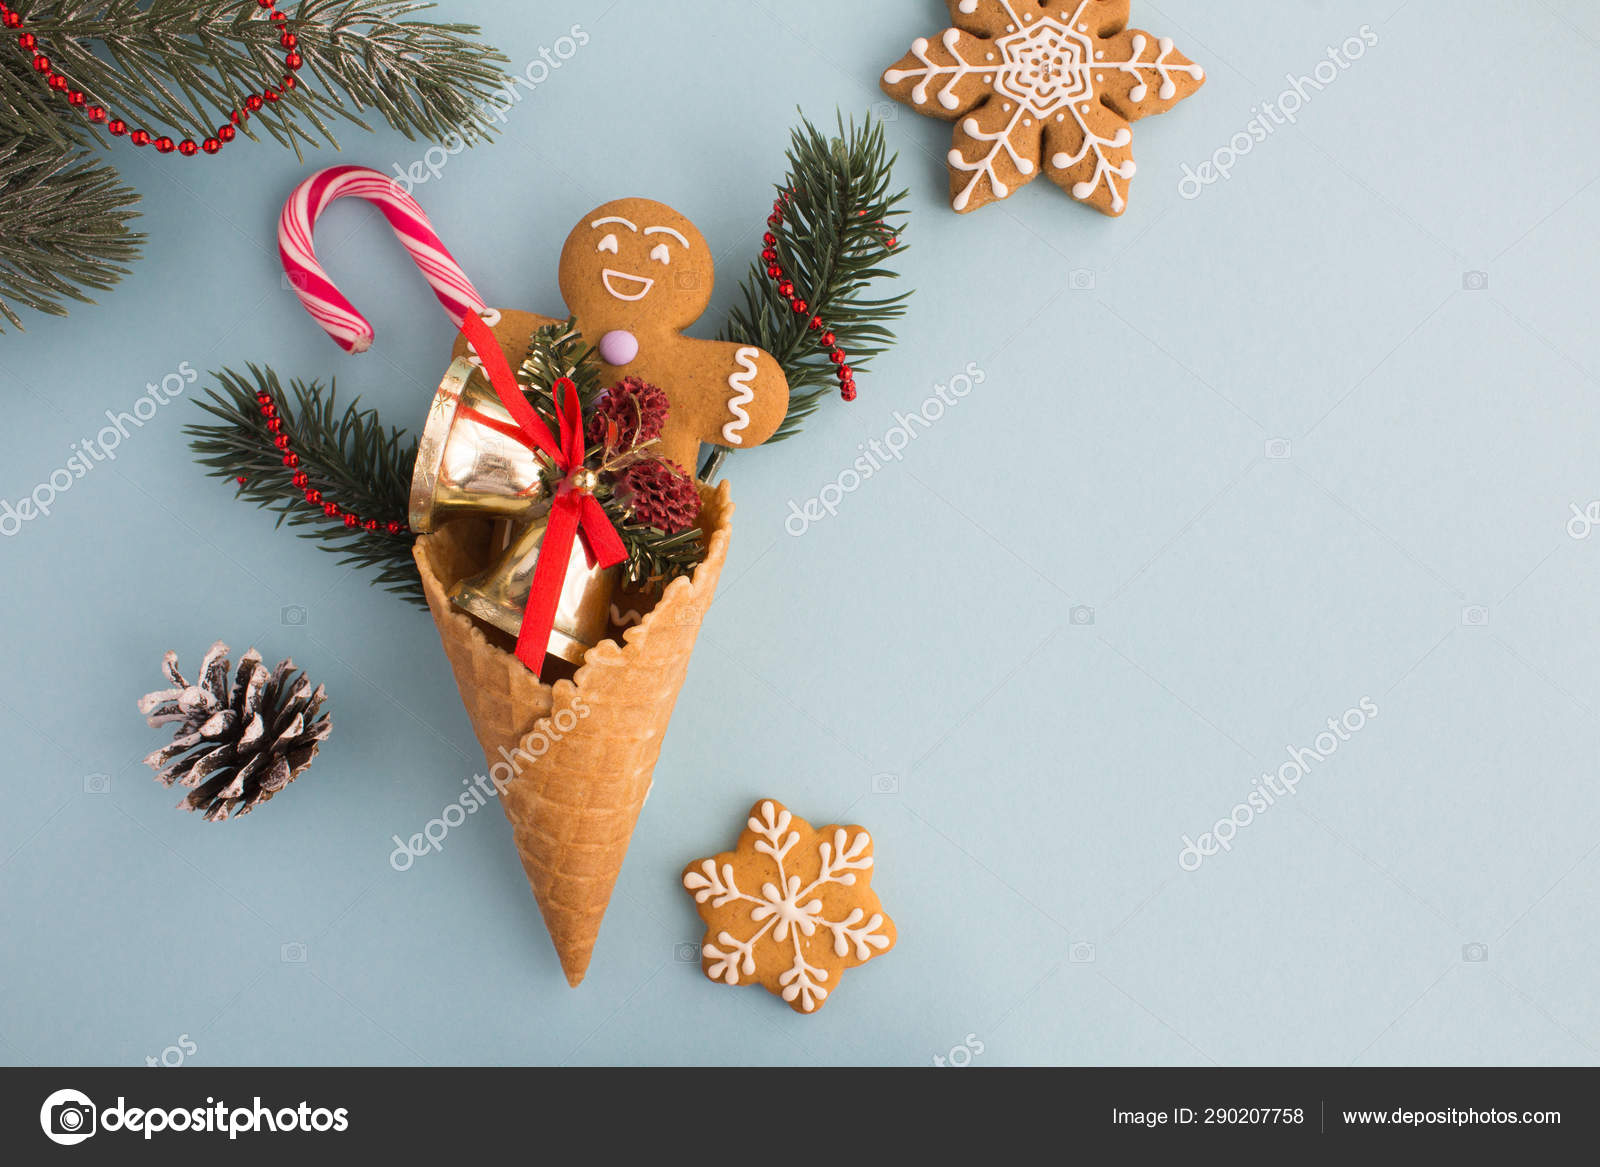 Cone Sorvete Com Composicao Natal Fundo Azul Top View Copy Stock Photo C Ly0712 290207758